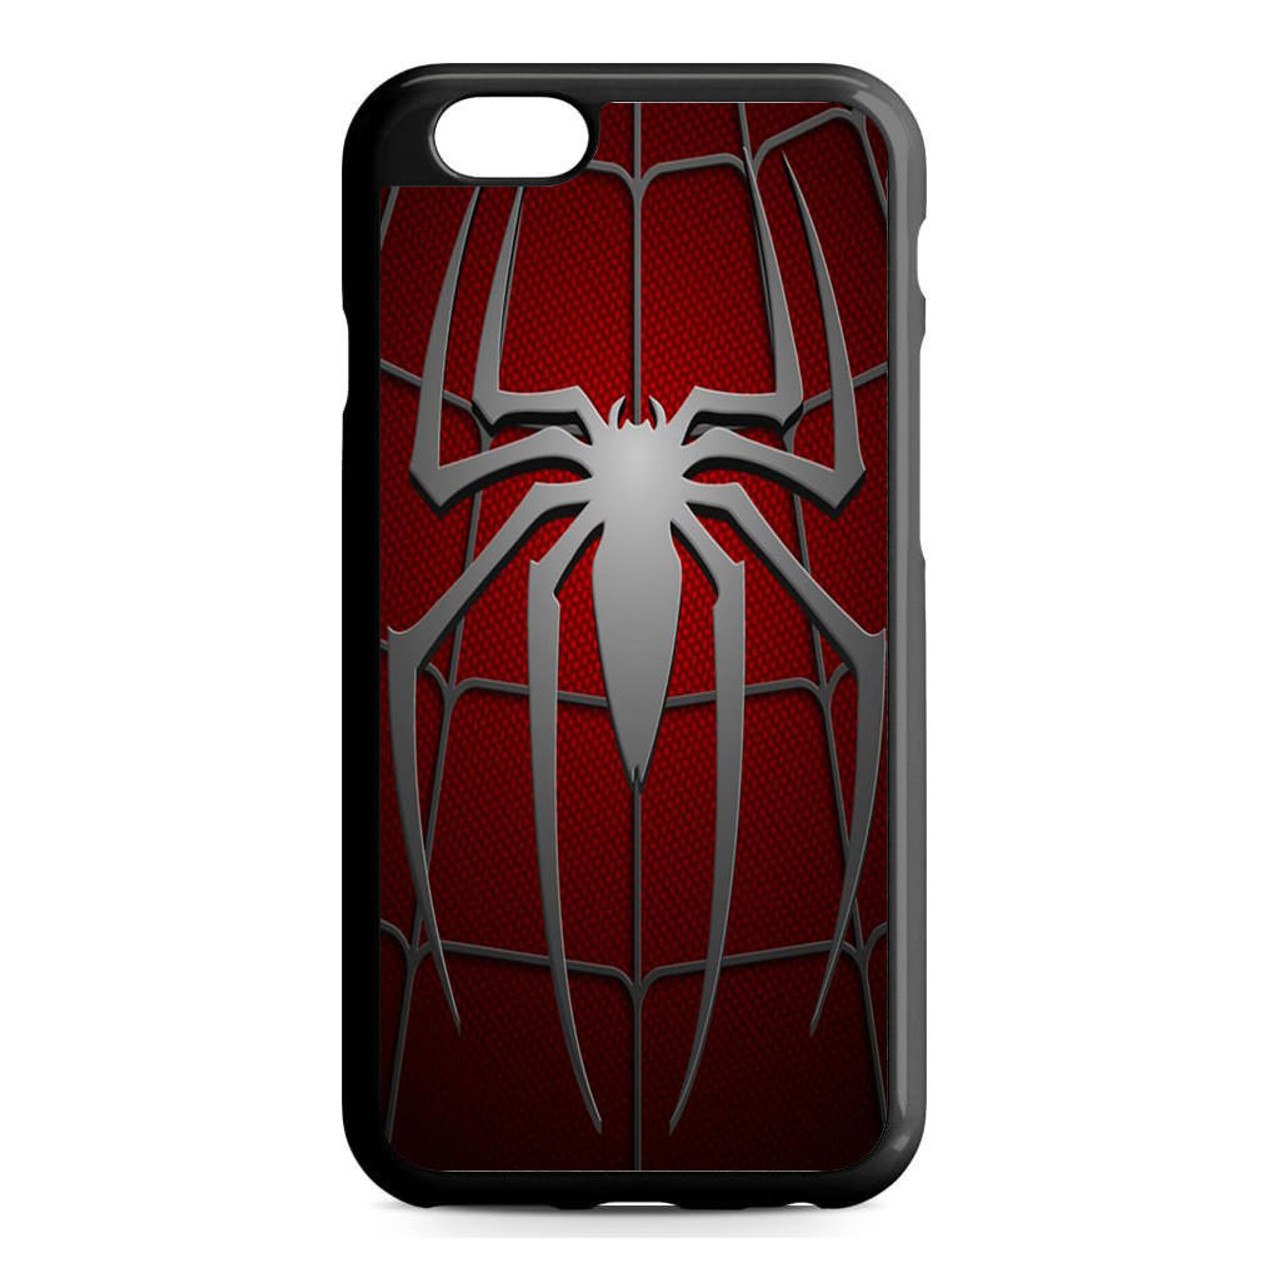 500b584be906 Spiderman iPhone 6 6S Case - GGIANS